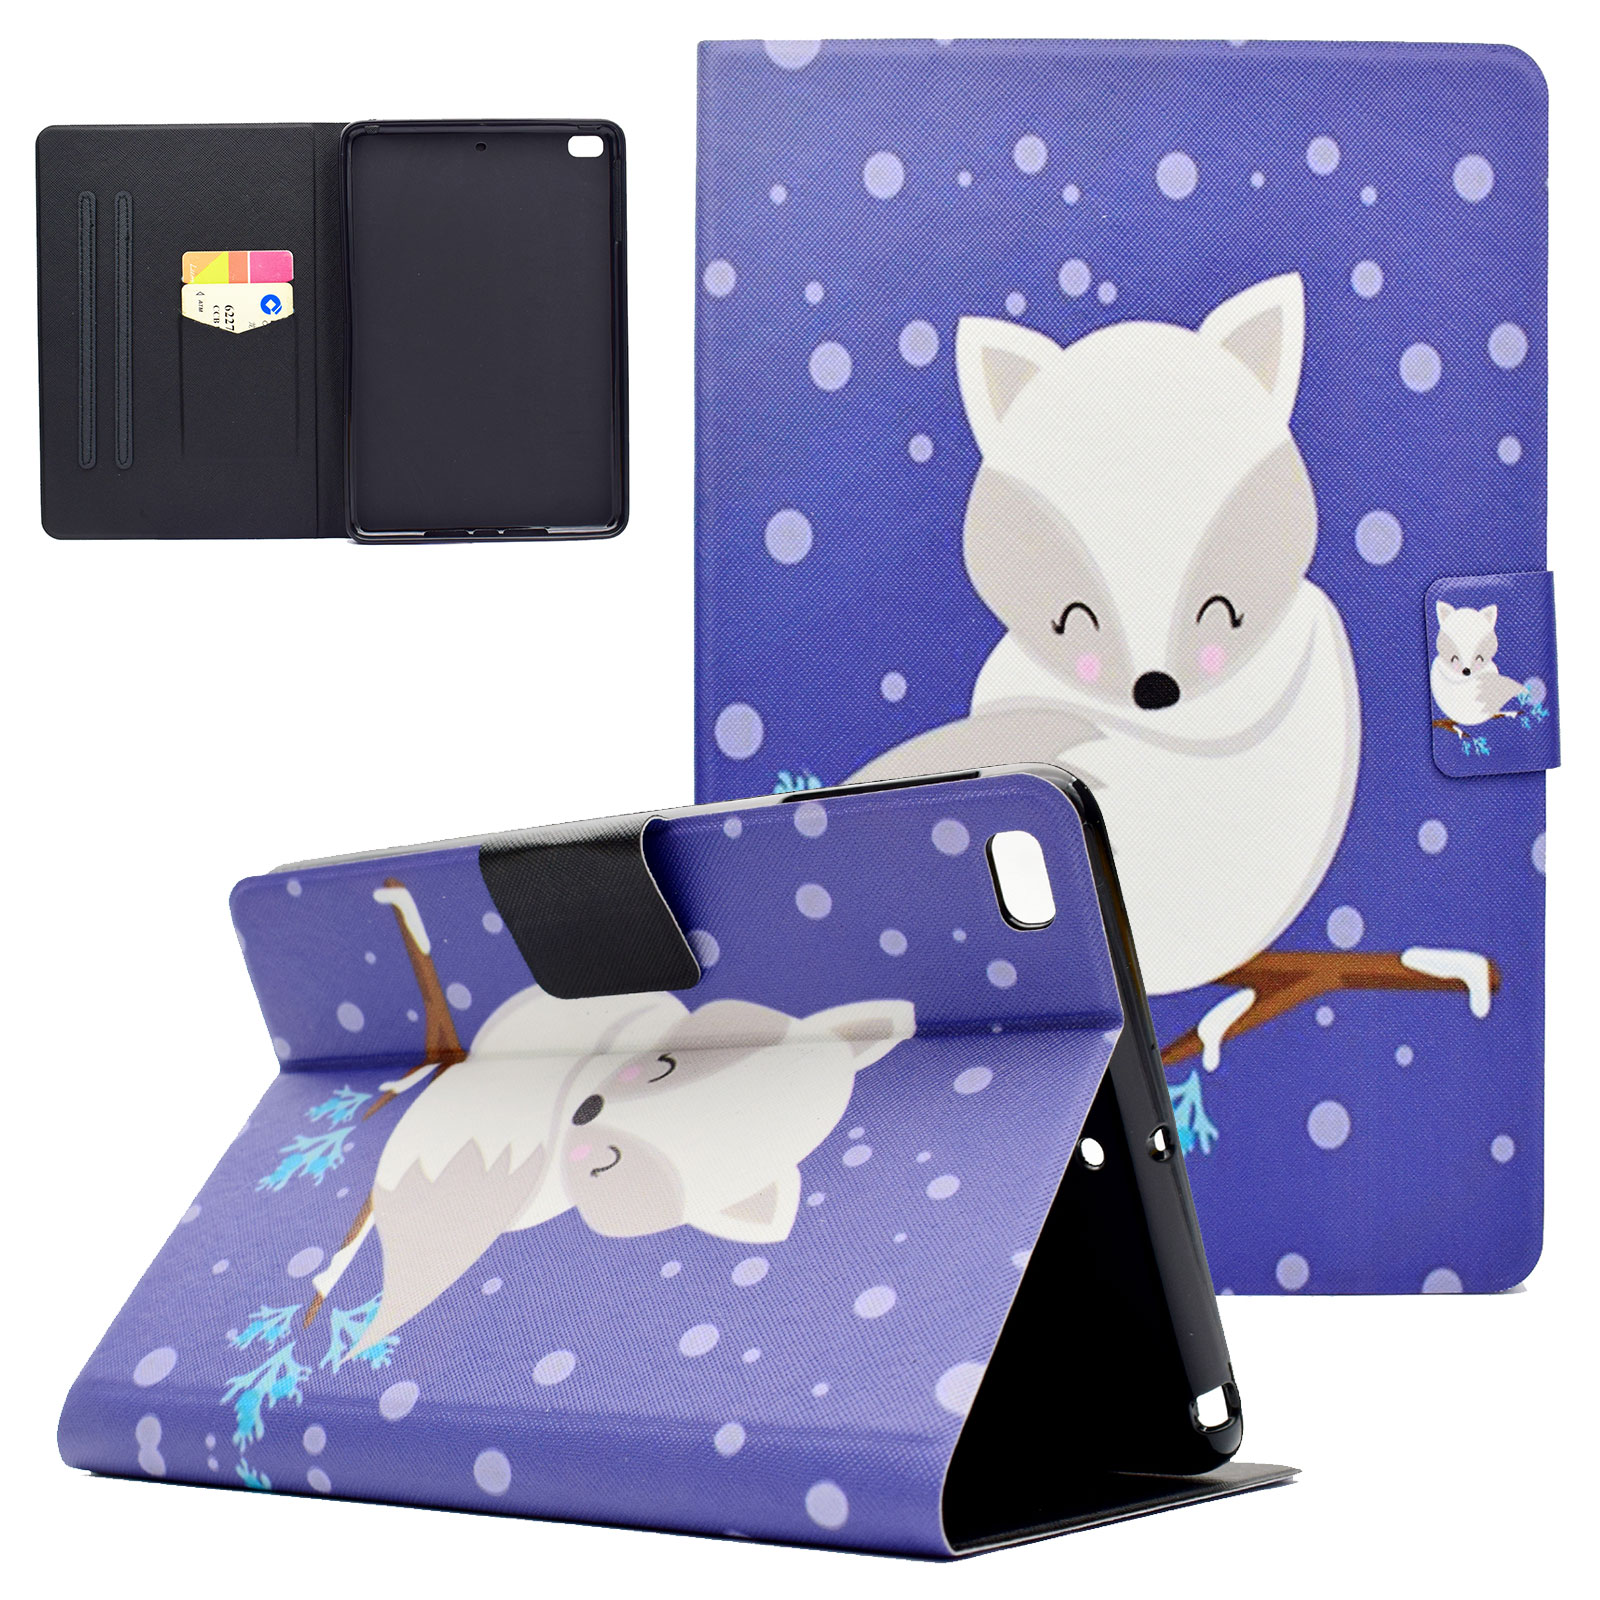 Wallet Case For iPad Mini 1 2 3 4, Goodest Flip Foilo Slim PU Leather Case Cover with Auto Sleep/Wake Function For 7.9 inch Apple iPad Mini 1/ Mini 2/ Mini 3/ Mini 4, White Fox